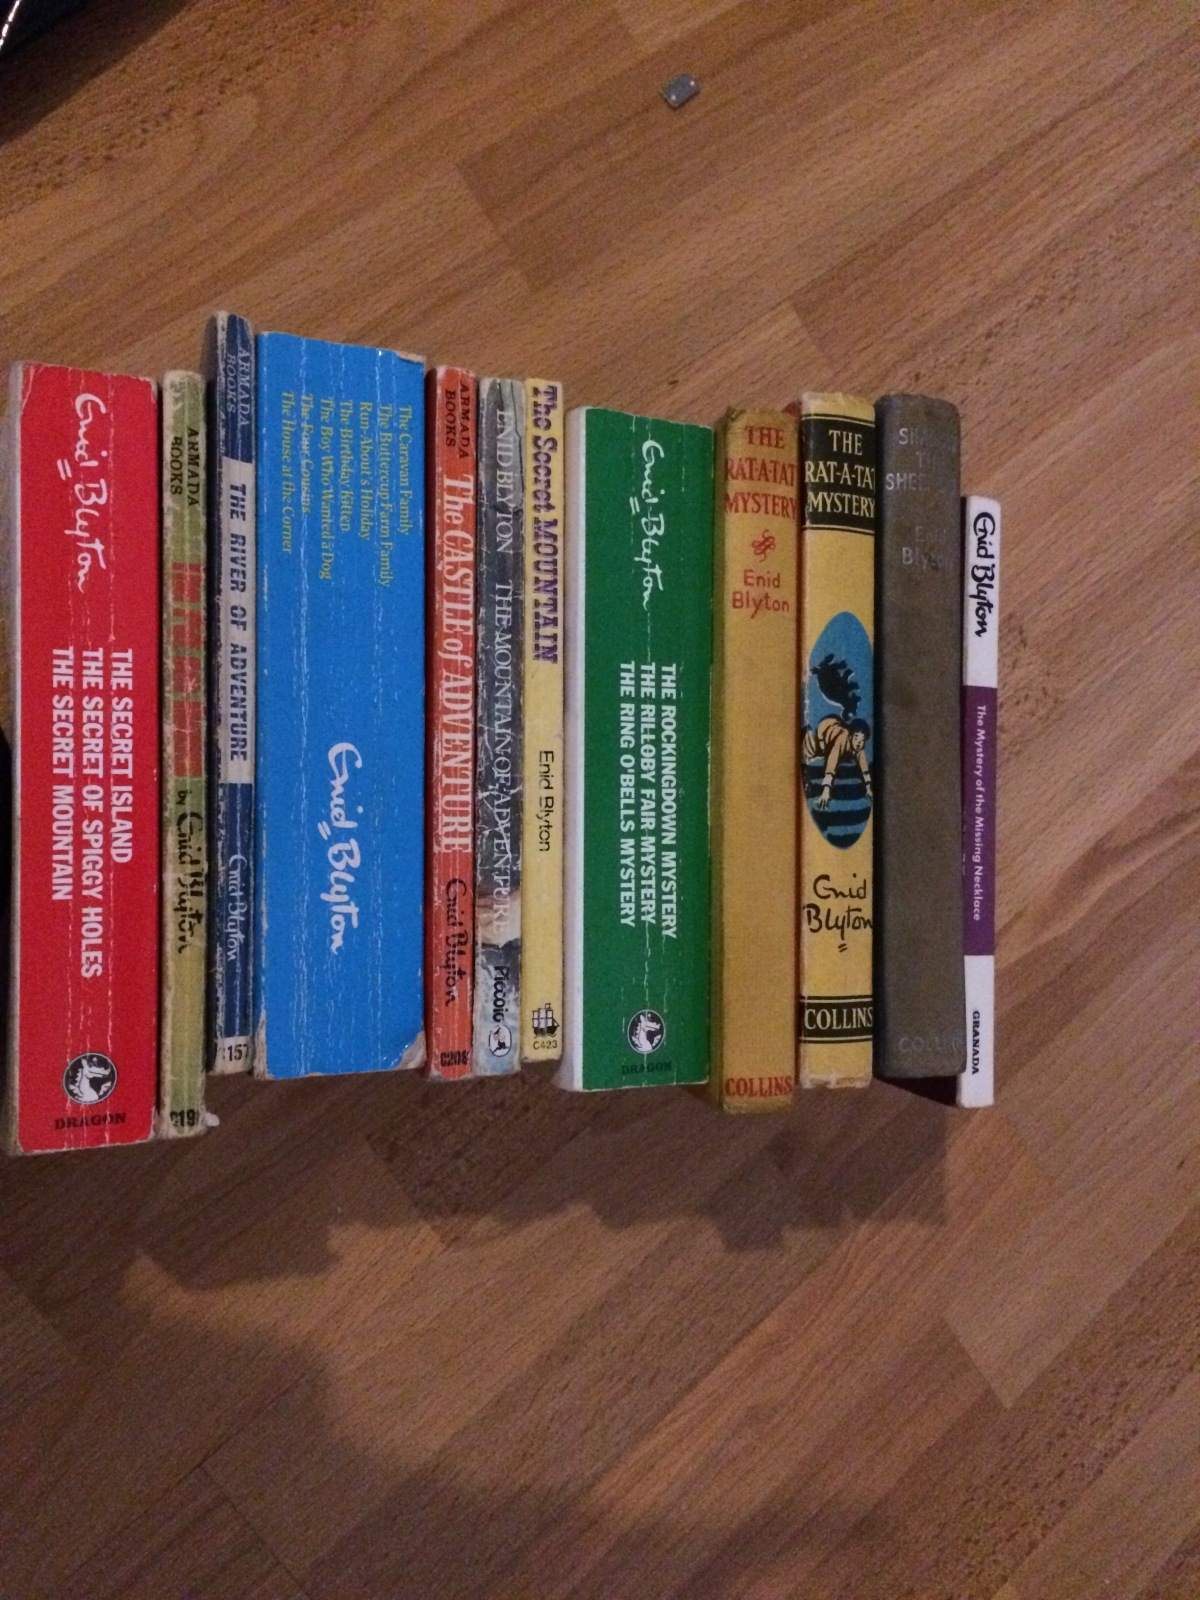 Giving a way my Enid Blyton books; must have spent hours of my childhood reading them…